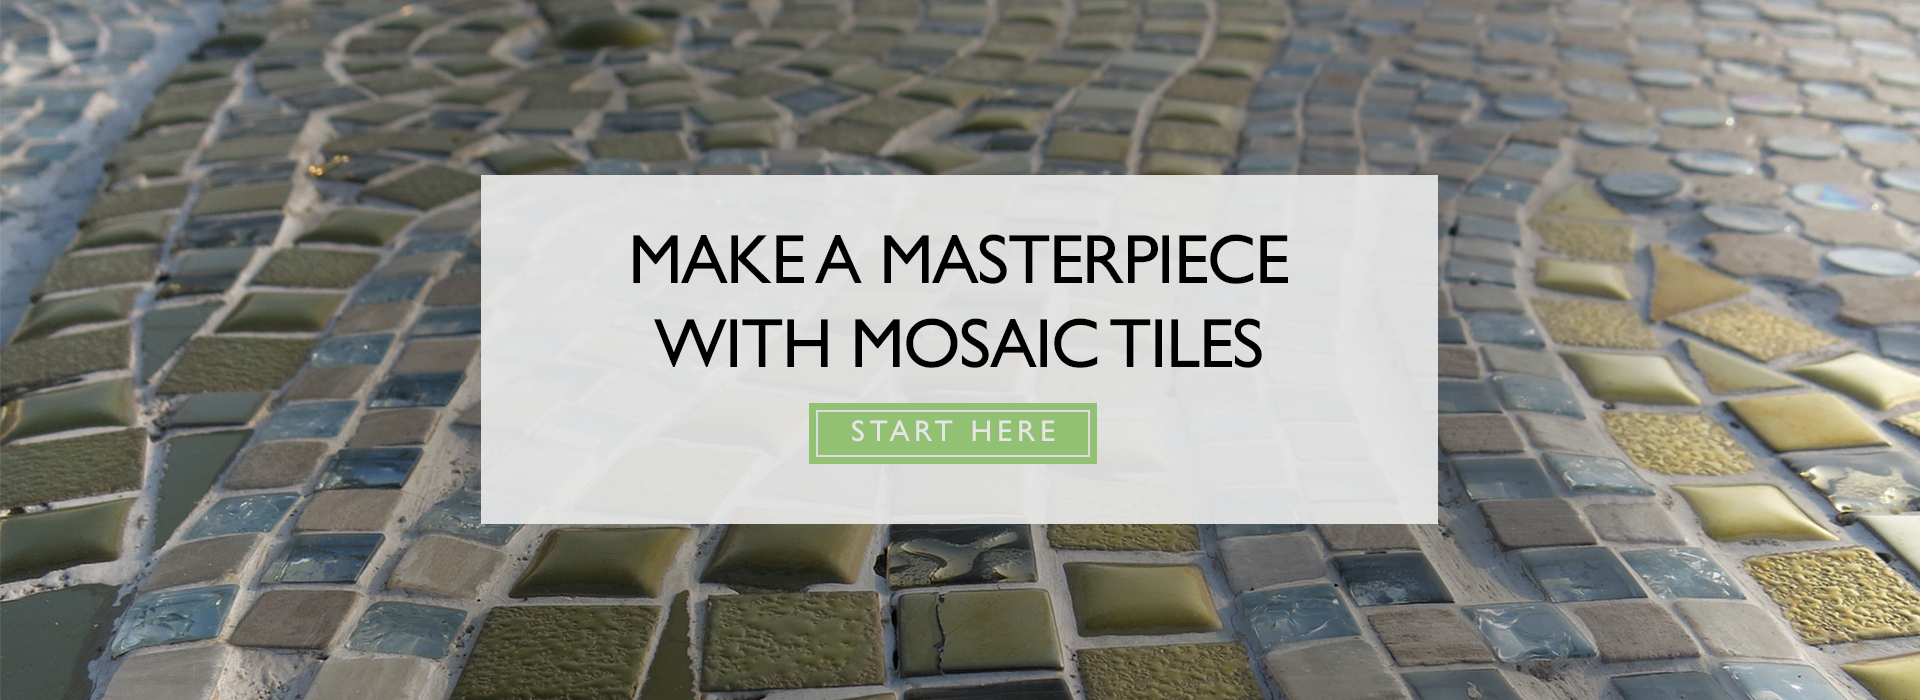 Click here to view our mosaic tiles